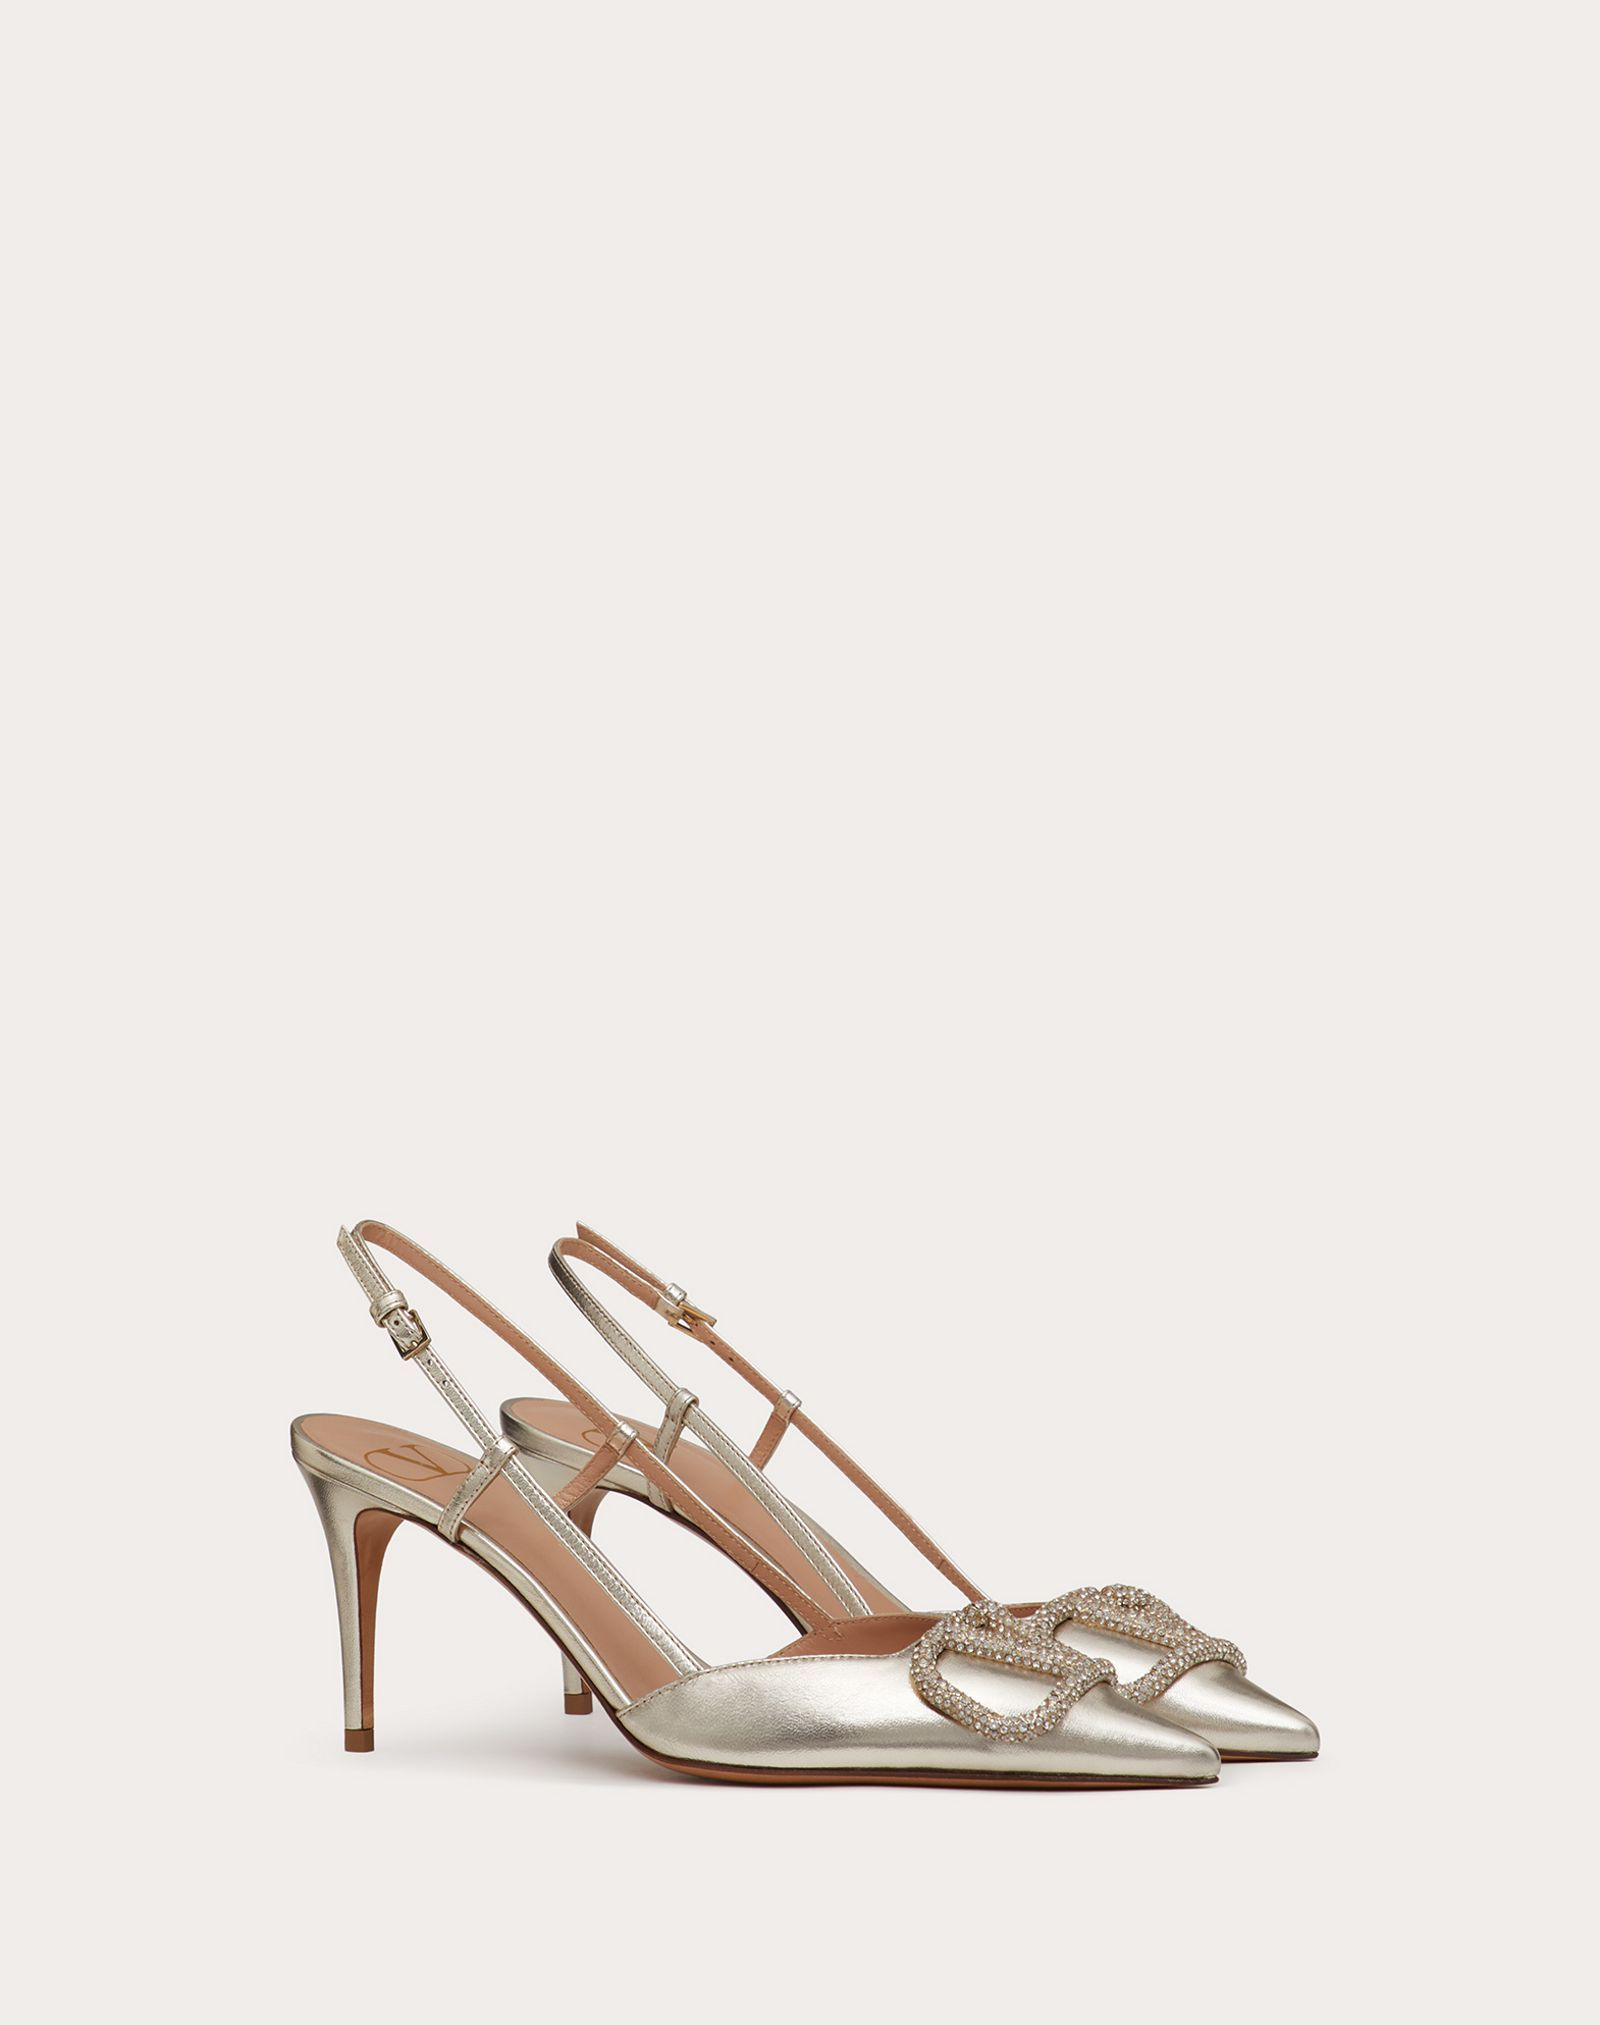 Vlogo Glow Laminated Nappa Slingback Pump 80 Mm 3 15 In For Woman Valentino Online Boutique In 2020 Slingback Pump Slingback Valentino